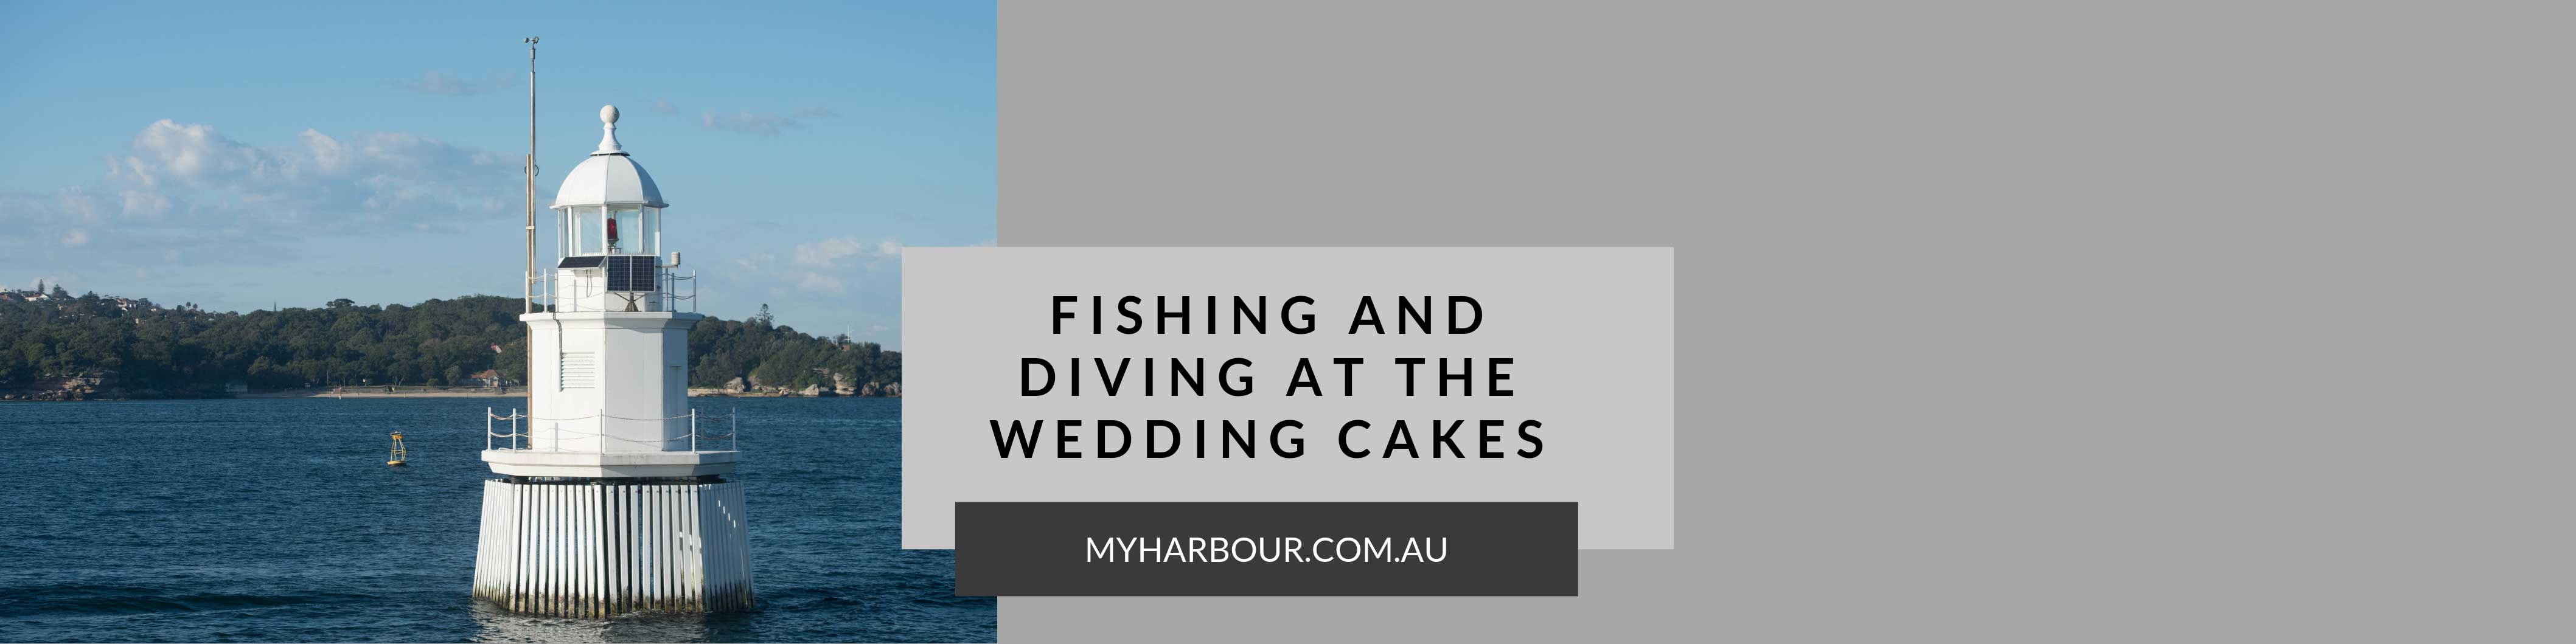 Wedding-Cakes-Lighthouse-Fishing-Diving-MyHarbour-Header